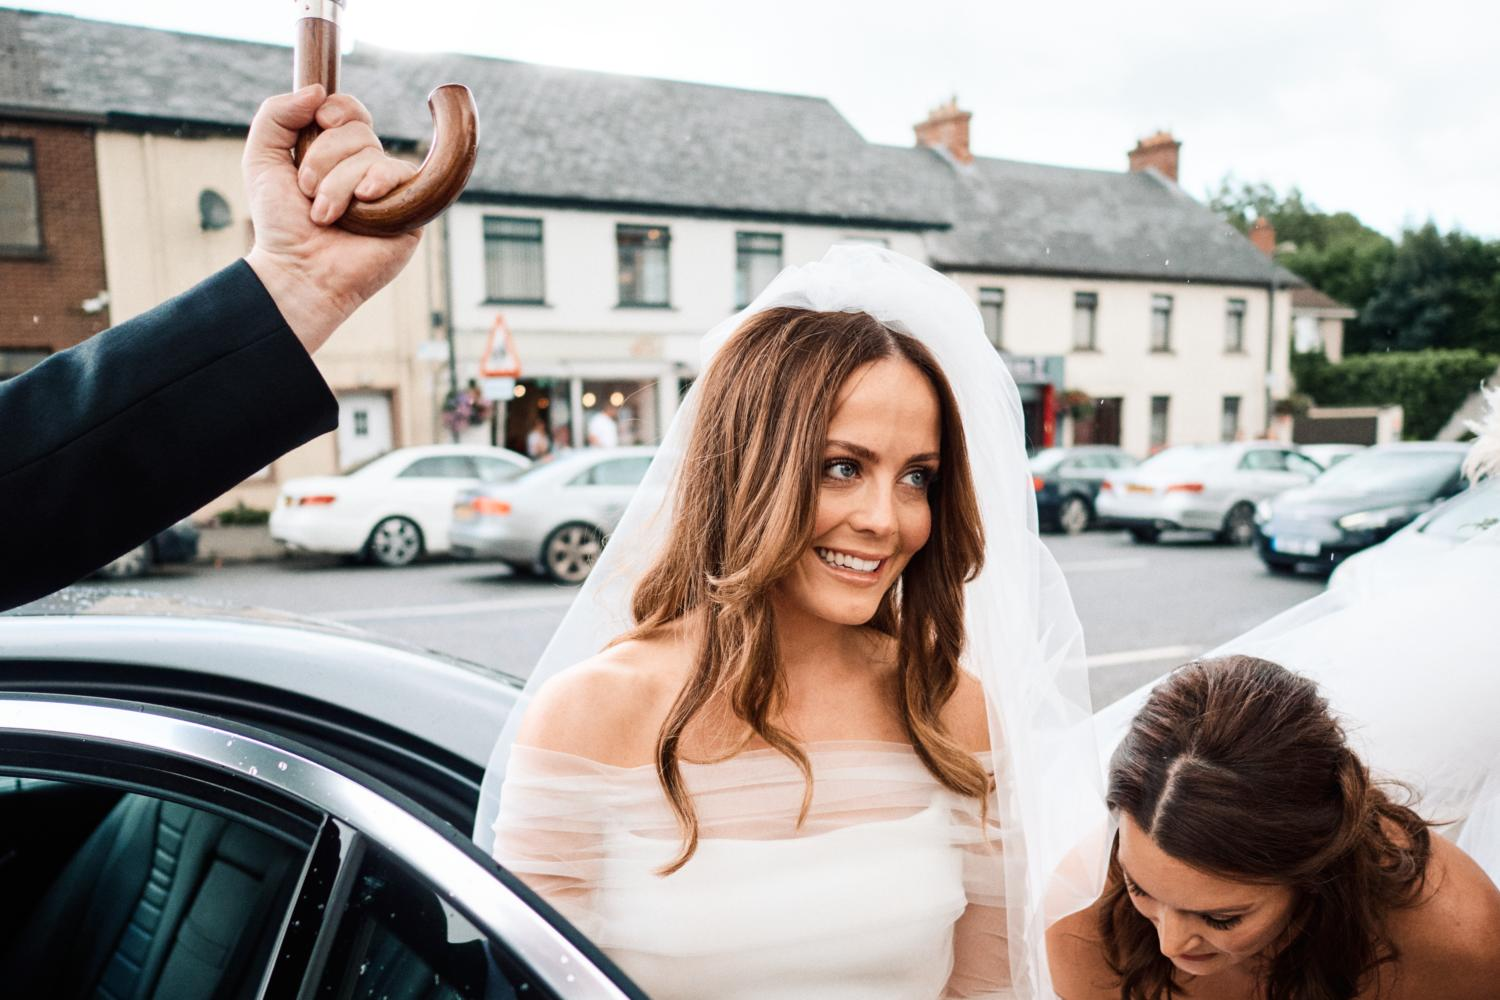 A driver holds an umbrella for a smiling bride in Dungannon